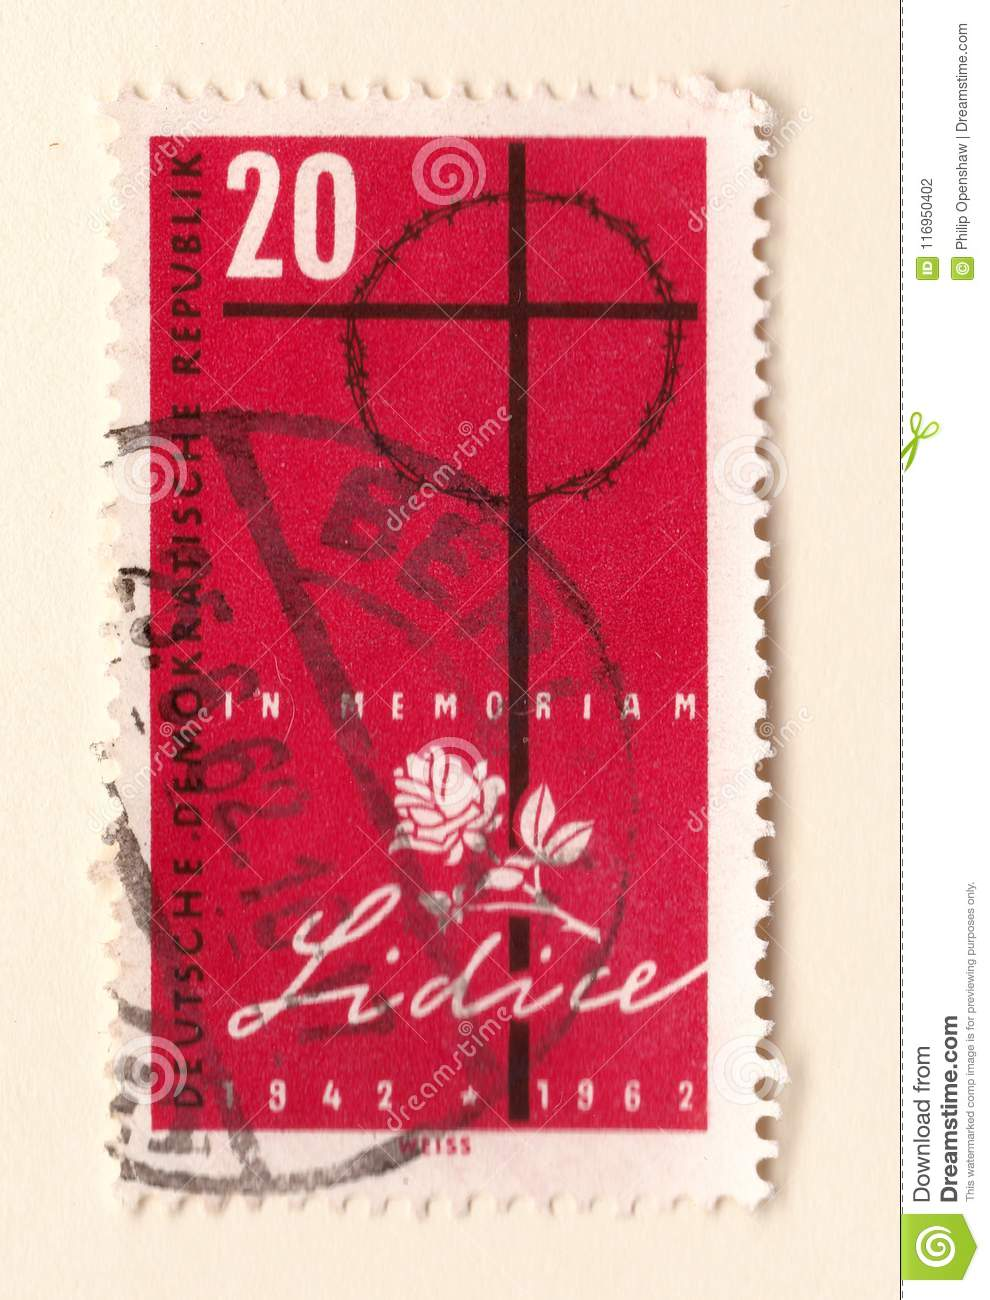 An old red east german stamp commemorating the massacre at lidice with a cross and white rose